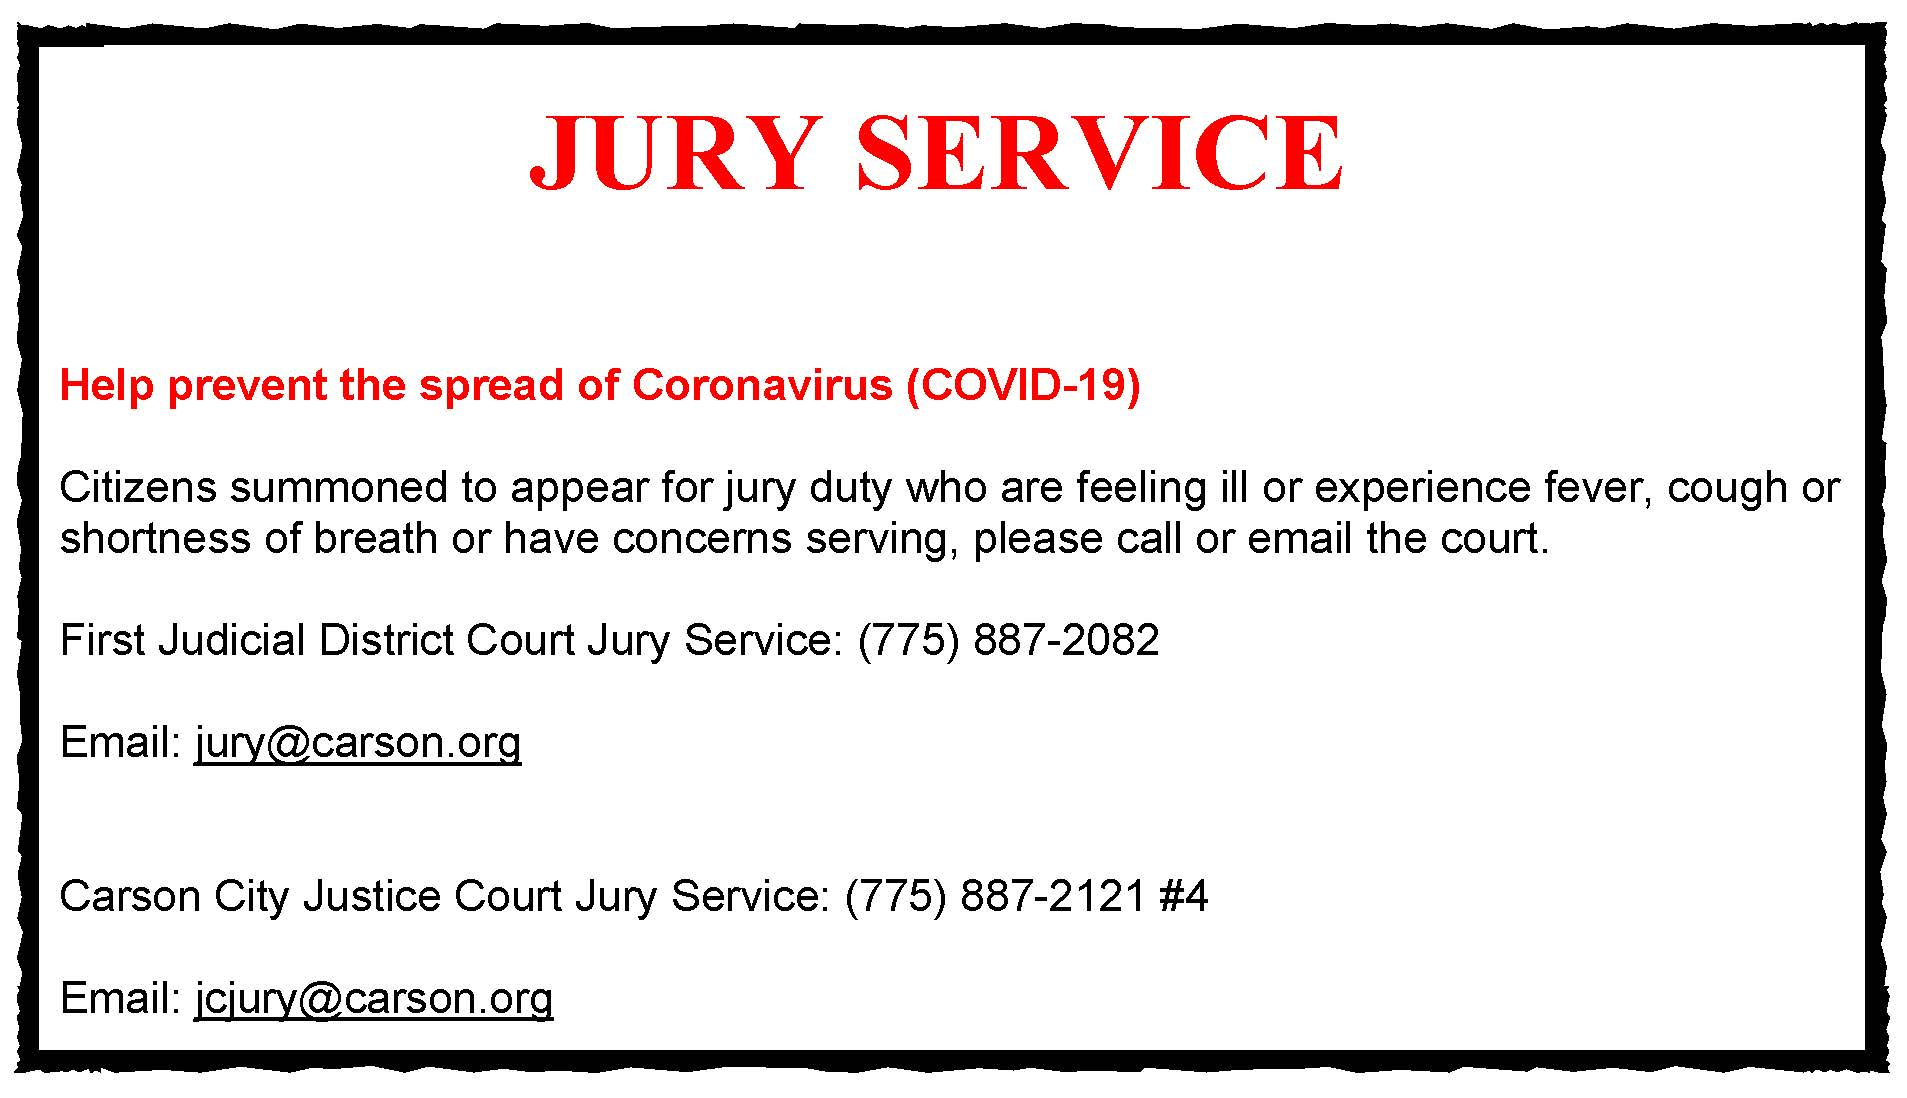 637197106467370000 - How To Get Out Of Jury Duty In Nevada